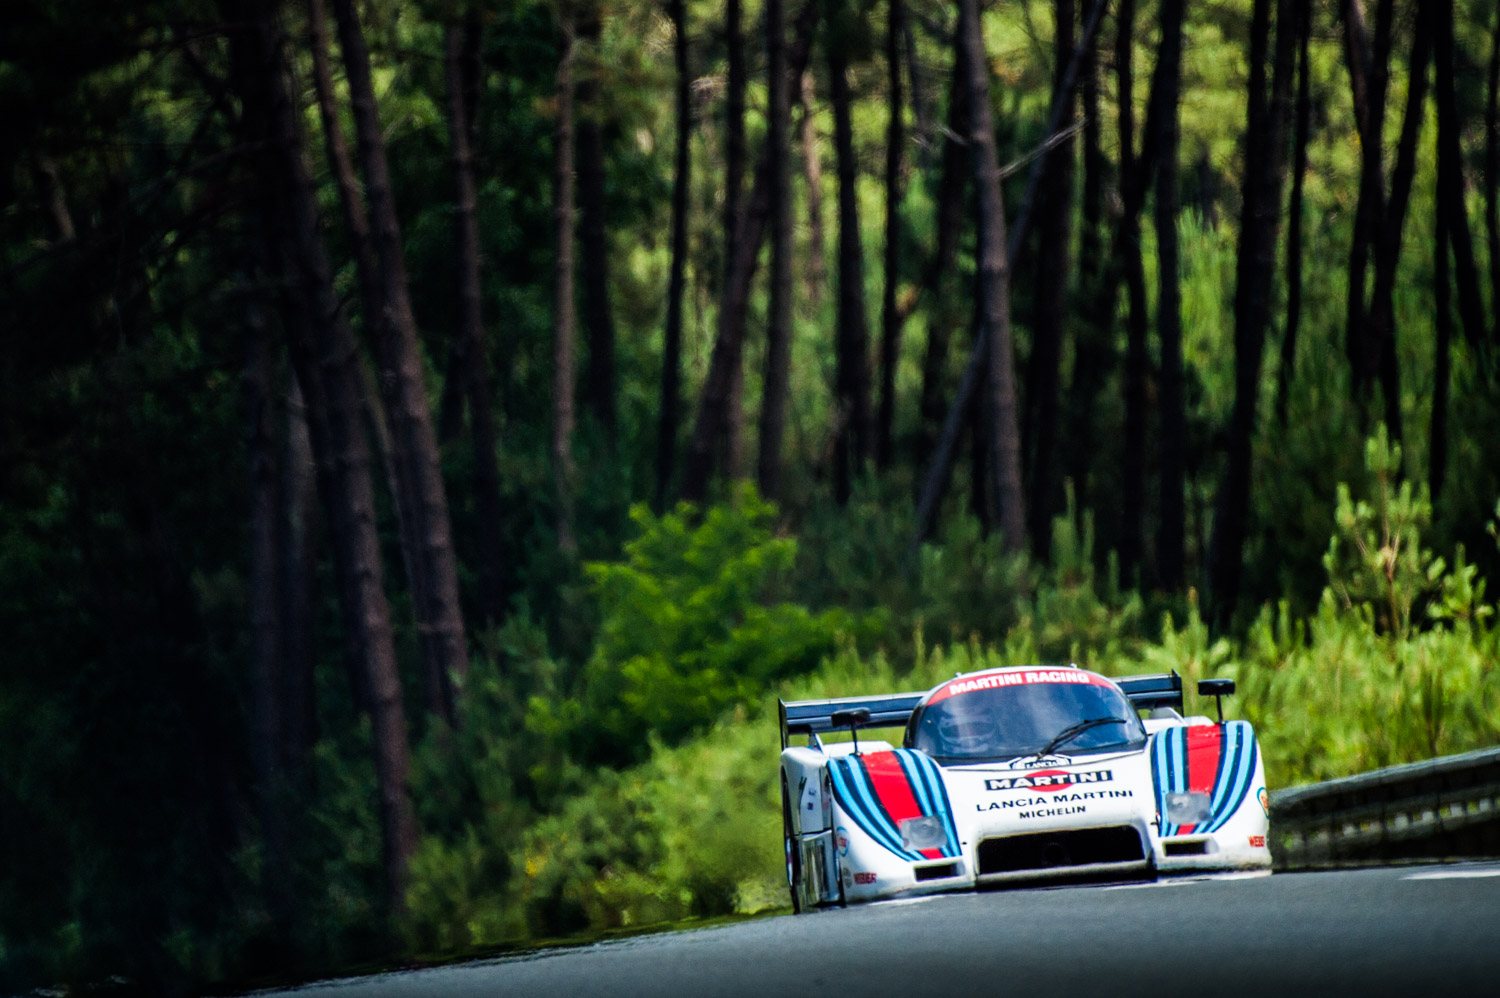 Jayson-Fong-Photography-Form-and-function-international-Lancia-LC2.jpg